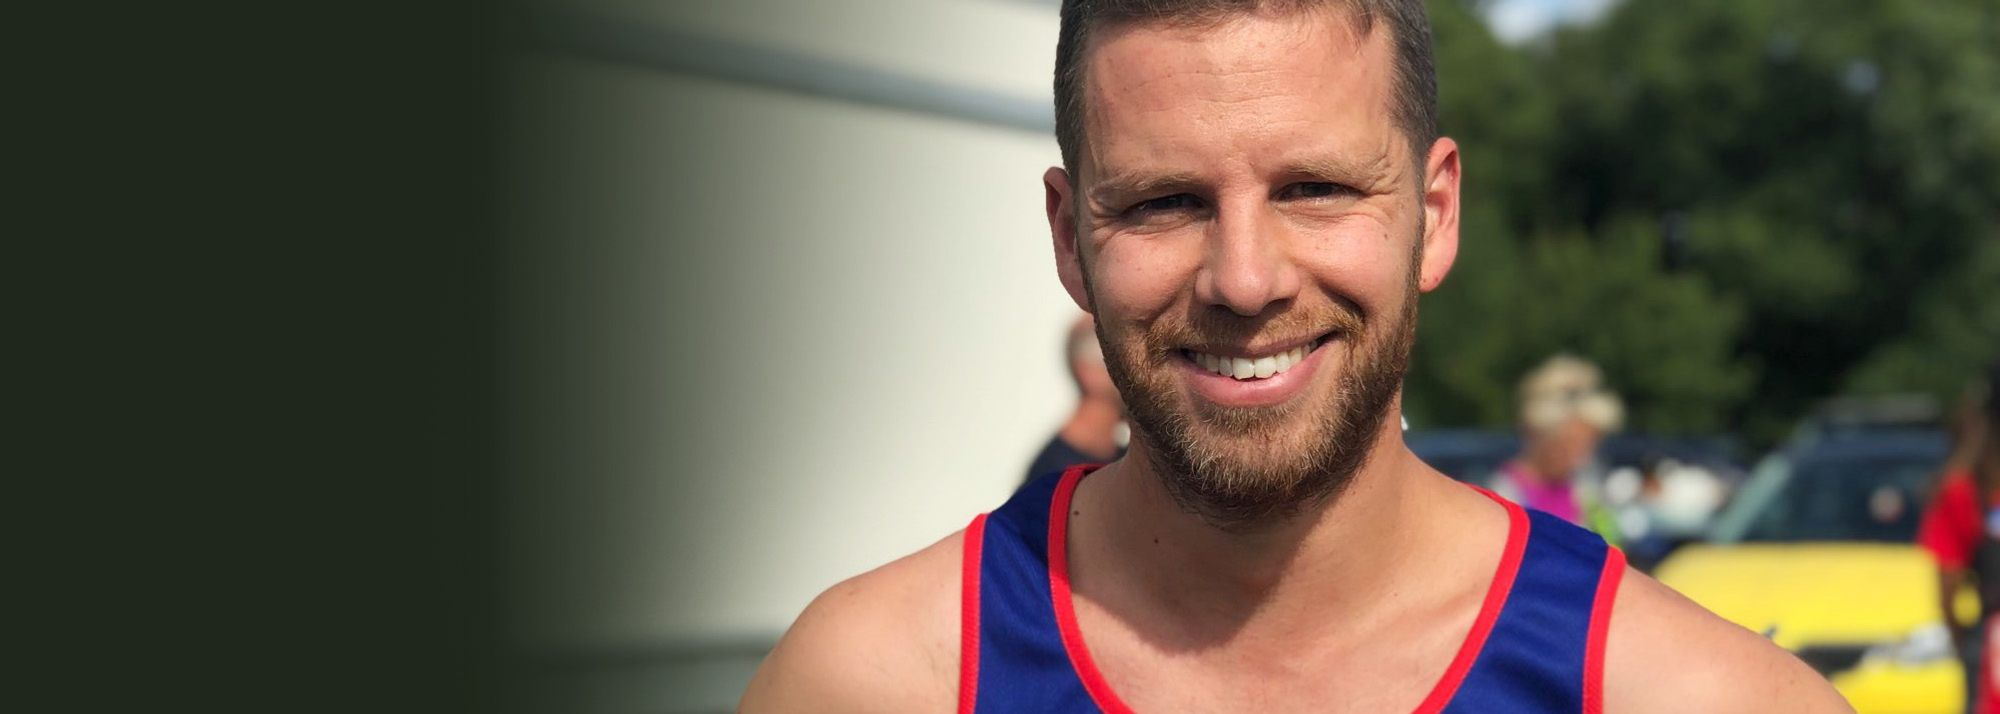 On 4 March 2018, British police officer Nick Bailey found himself caught up in the Salisbury poisonings. To mark Mental Health Awareness Week, he explains how running has helped him to process the trauma of that March day and its aftermath.